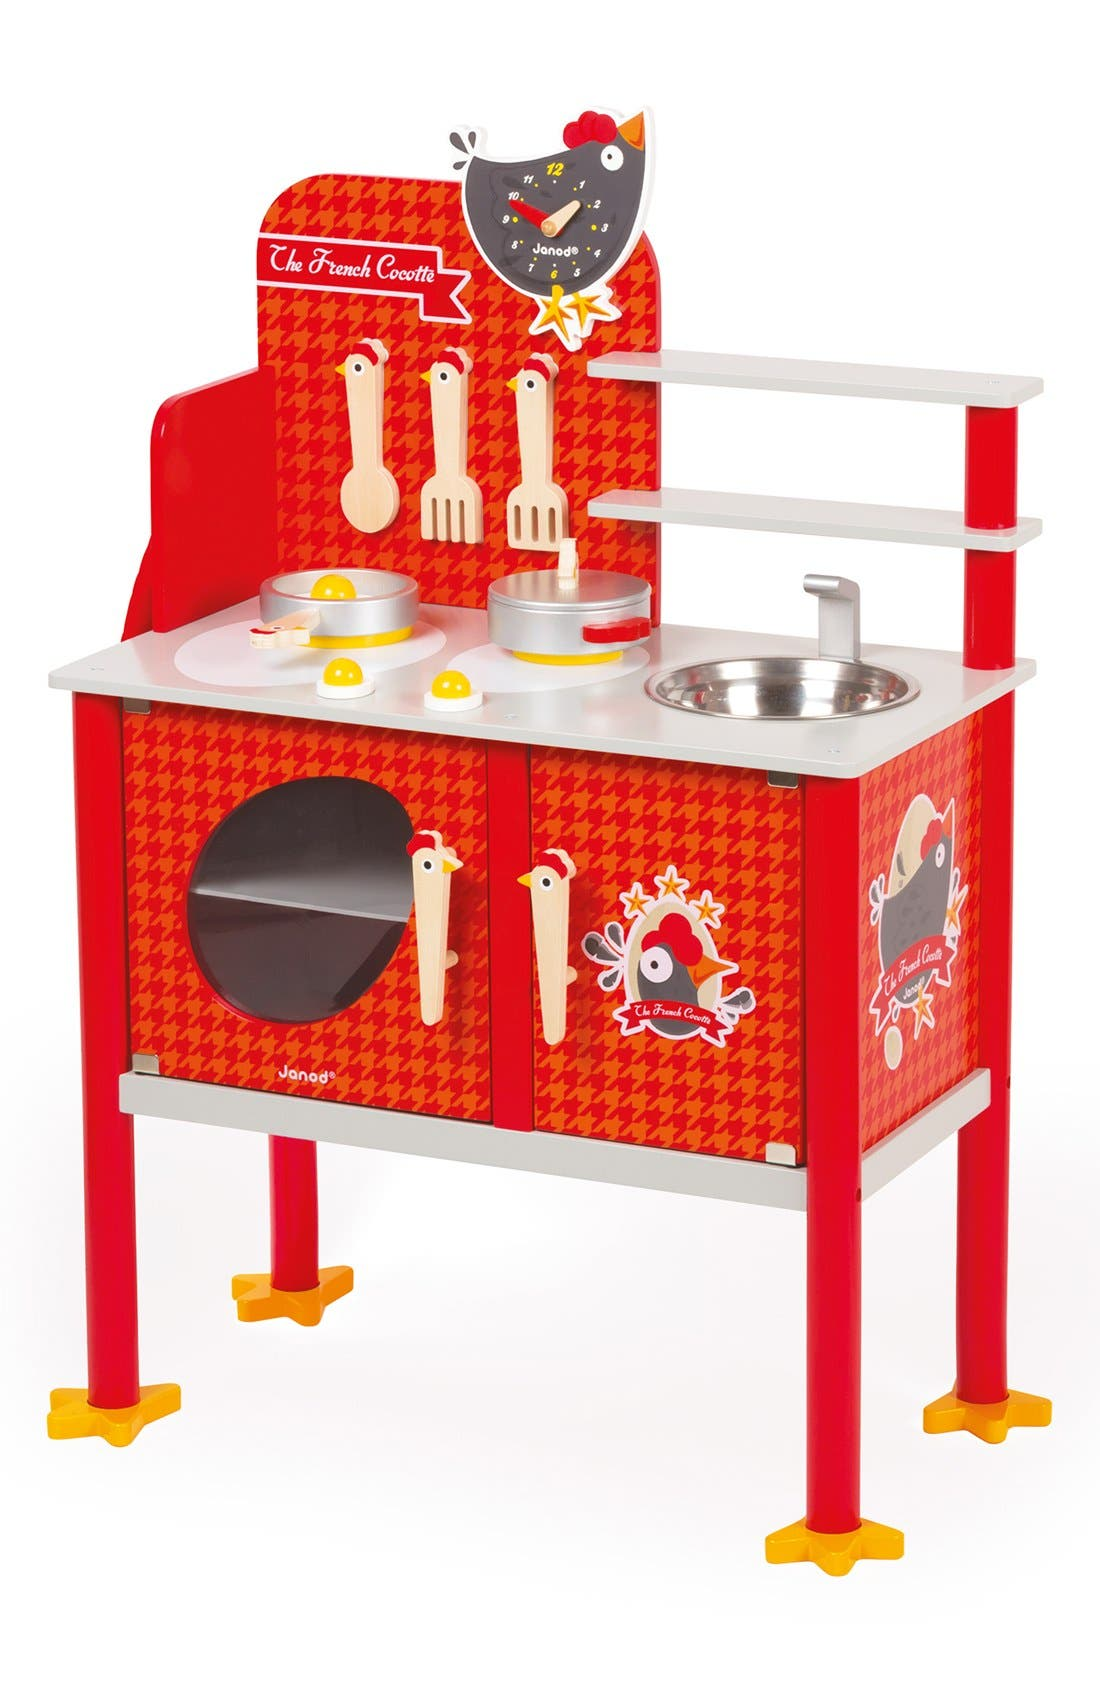 'French Cocotte - Maxi Cooker' Toy,                             Main thumbnail 1, color,                             Multi